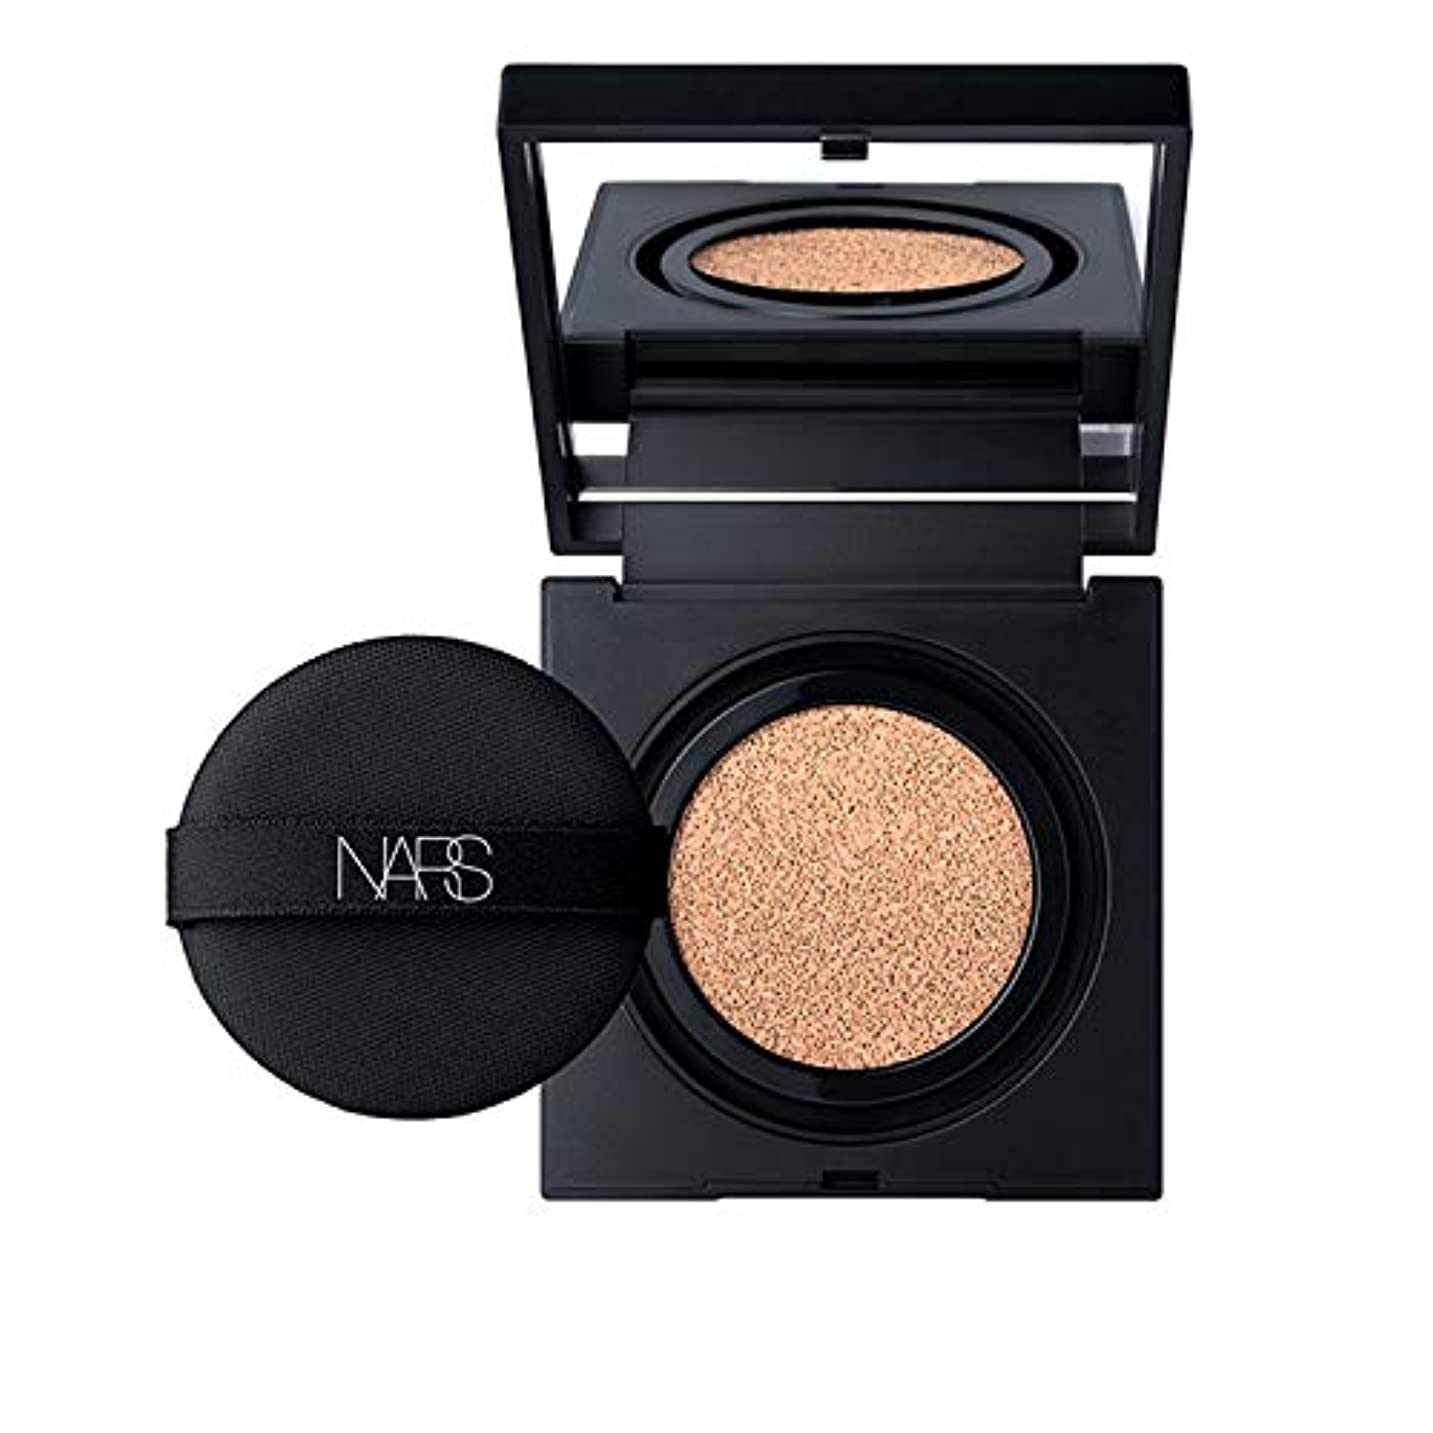 驚くばかりに応じて勤勉なNars(ナーズ) Natural Radiant Longwear Cushion Foundation 12g # Mont Blanc